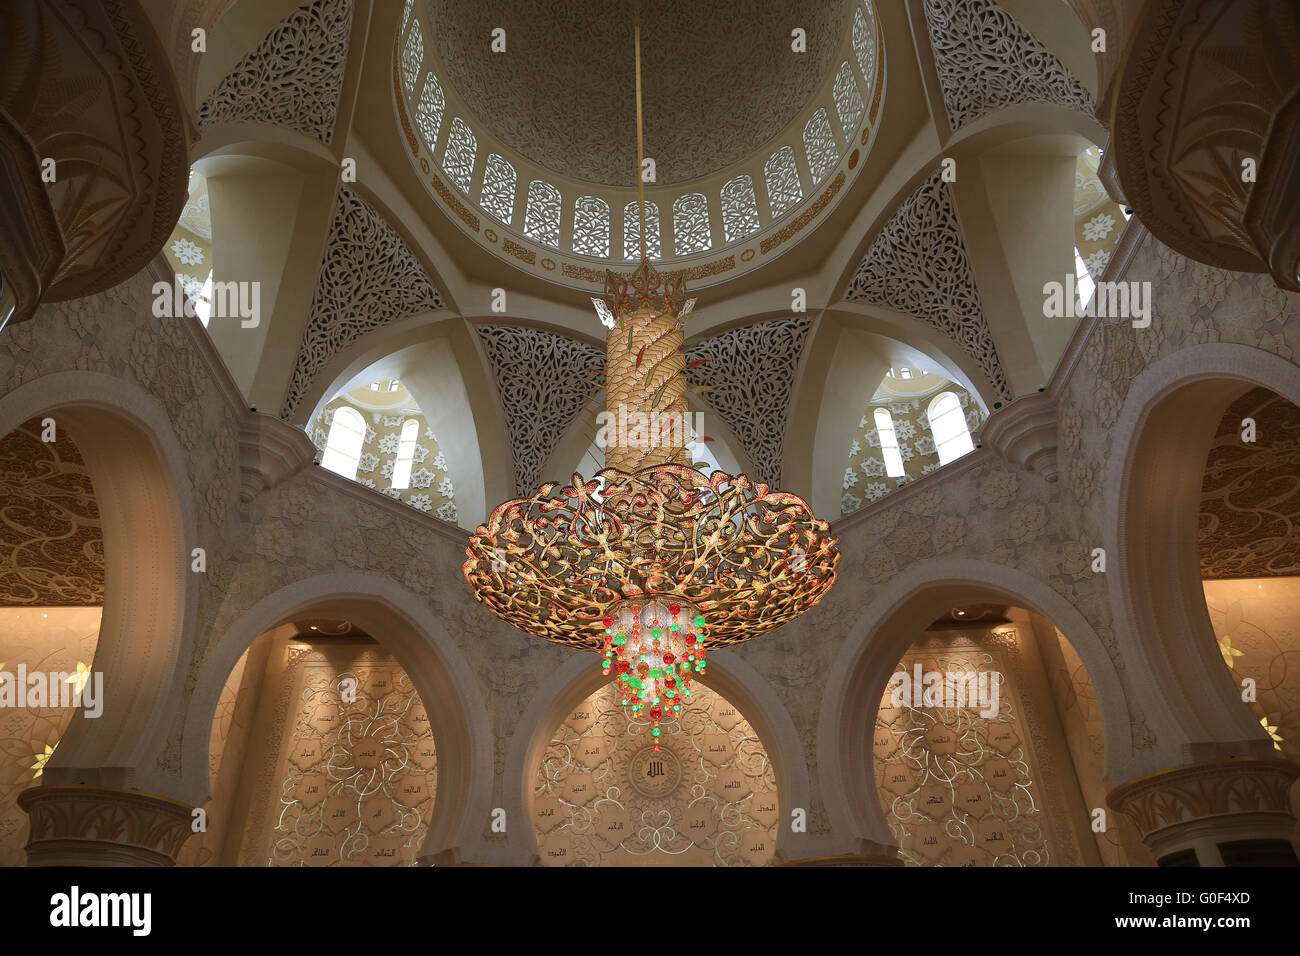 Glimmering Chandelier in the Sheikh Fayed Mosque in Abu Dhabi - Stock Image